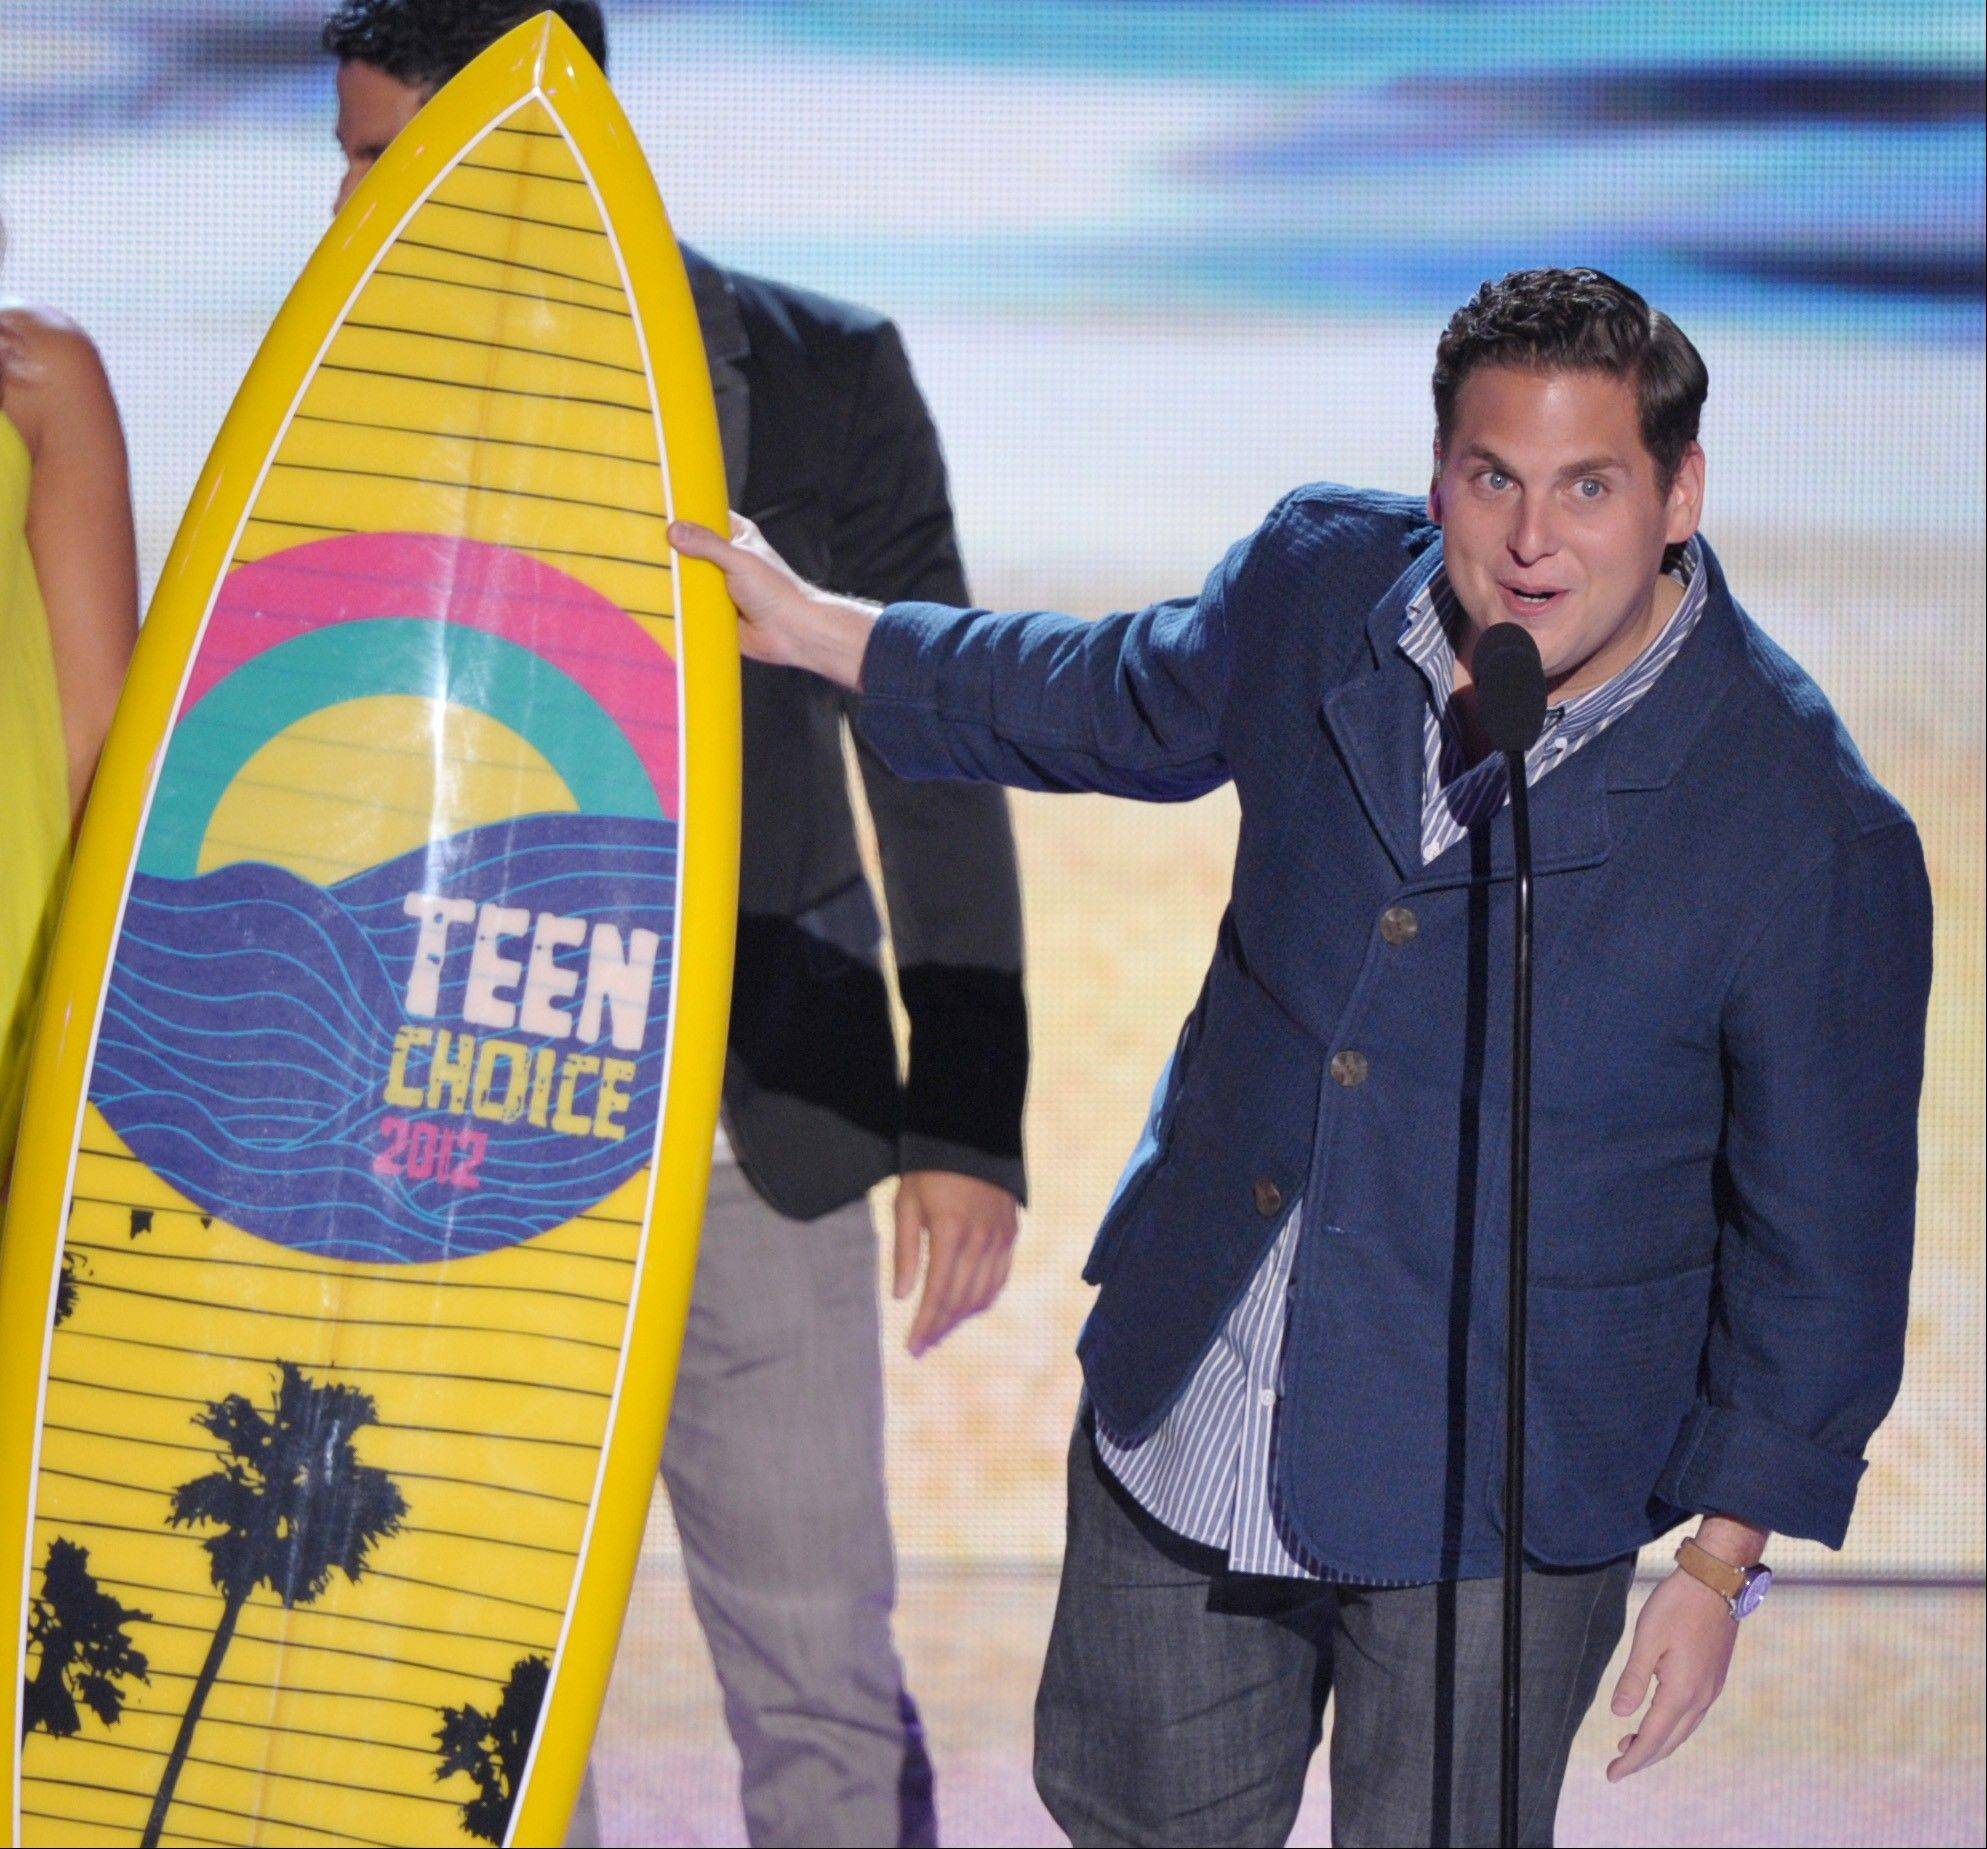 Jonah Hill accepts the award for choice comedy movie award onstage at the Teen Choice Awards on Sunday.